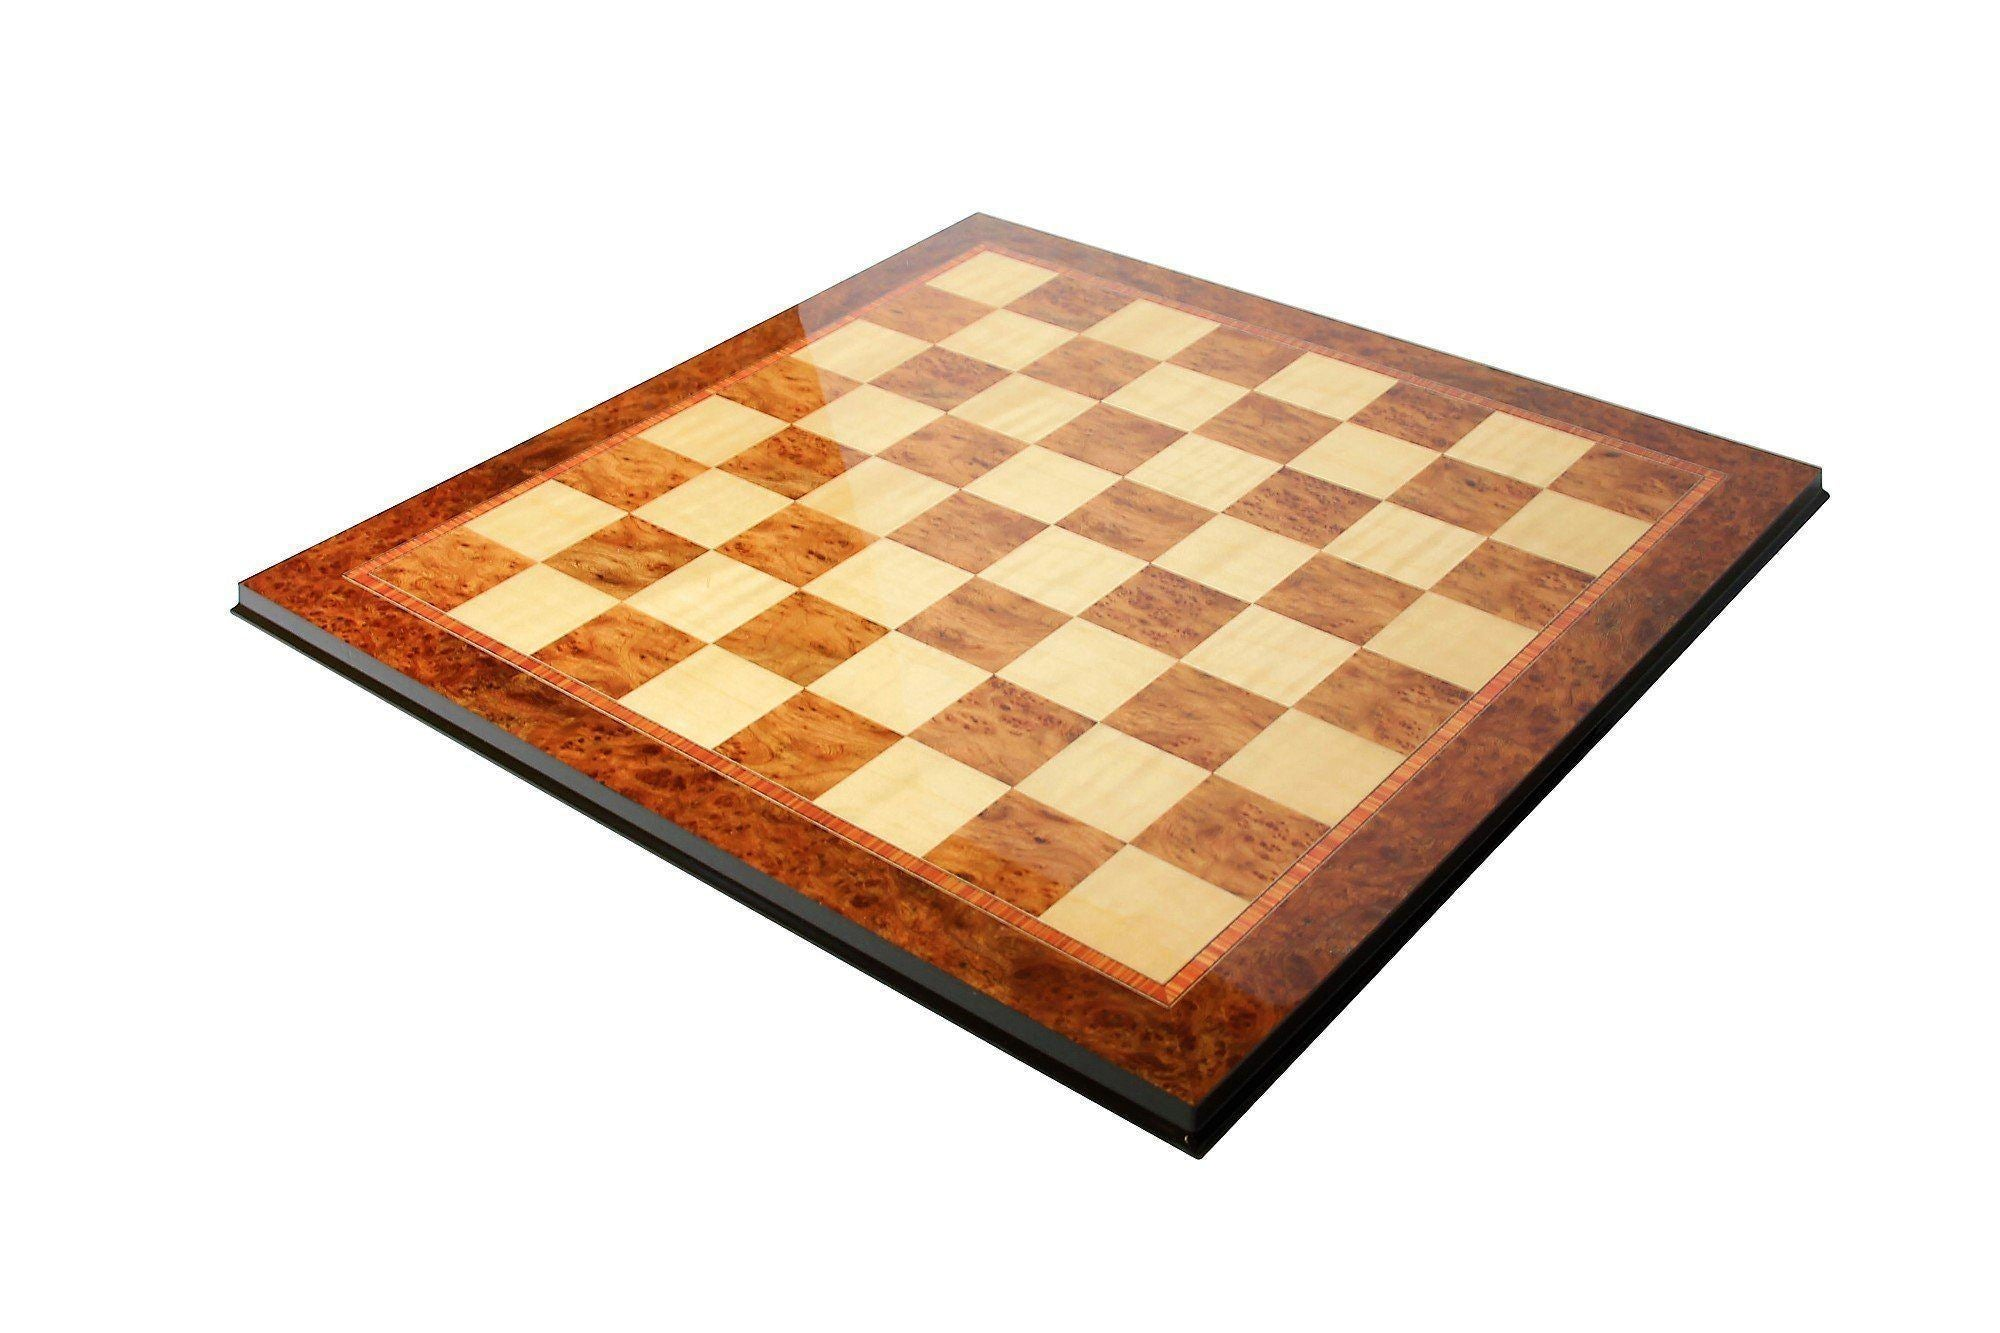 Olmo & Maple Prestige Italian Chess Board - Official Staunton™ Chess Company